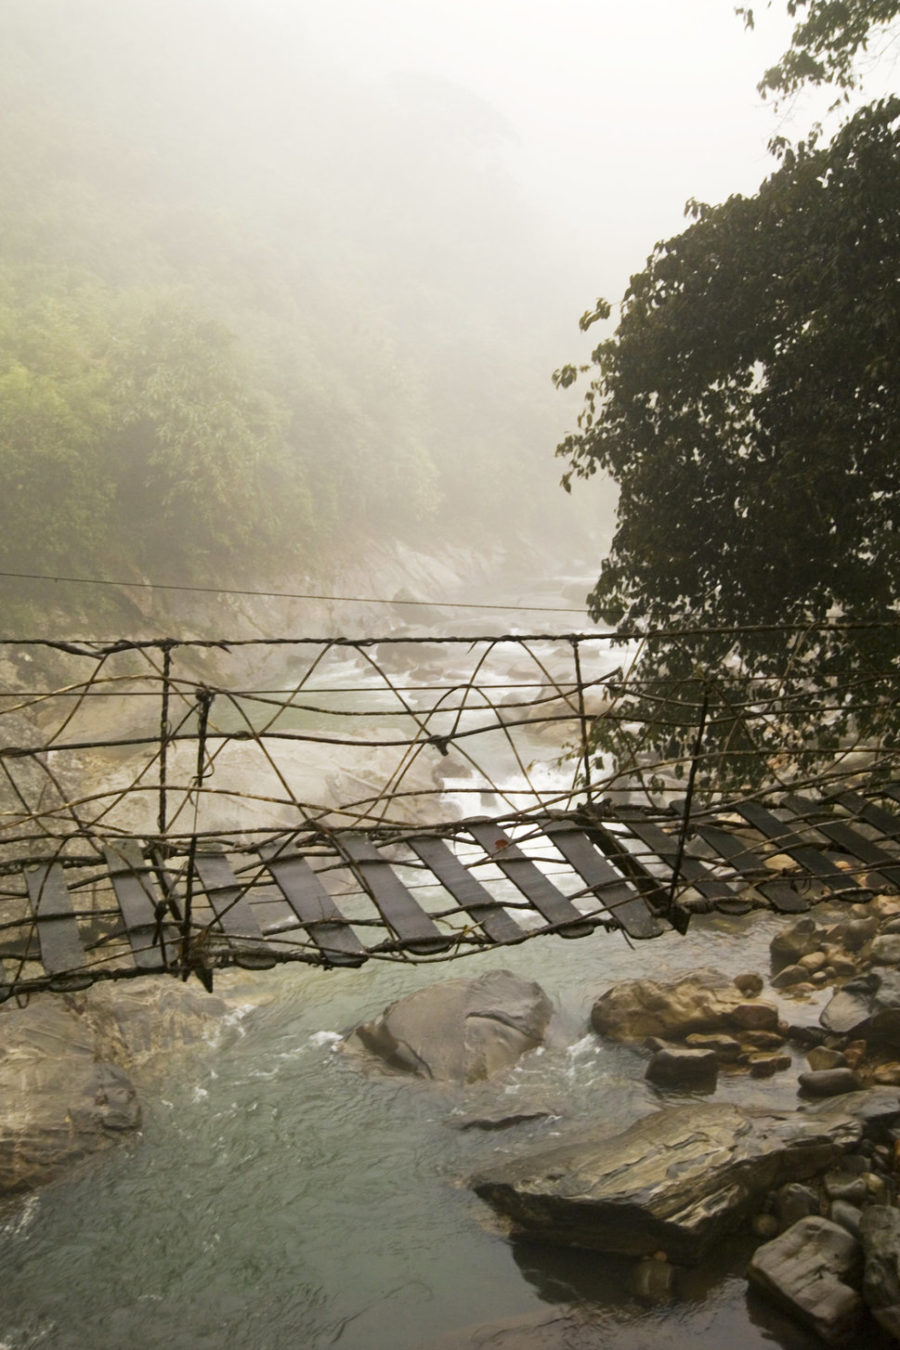 Rickety foot bridge in Northern Hilltribe trekking city of Moung Mon on the border of China (Sapa Region).